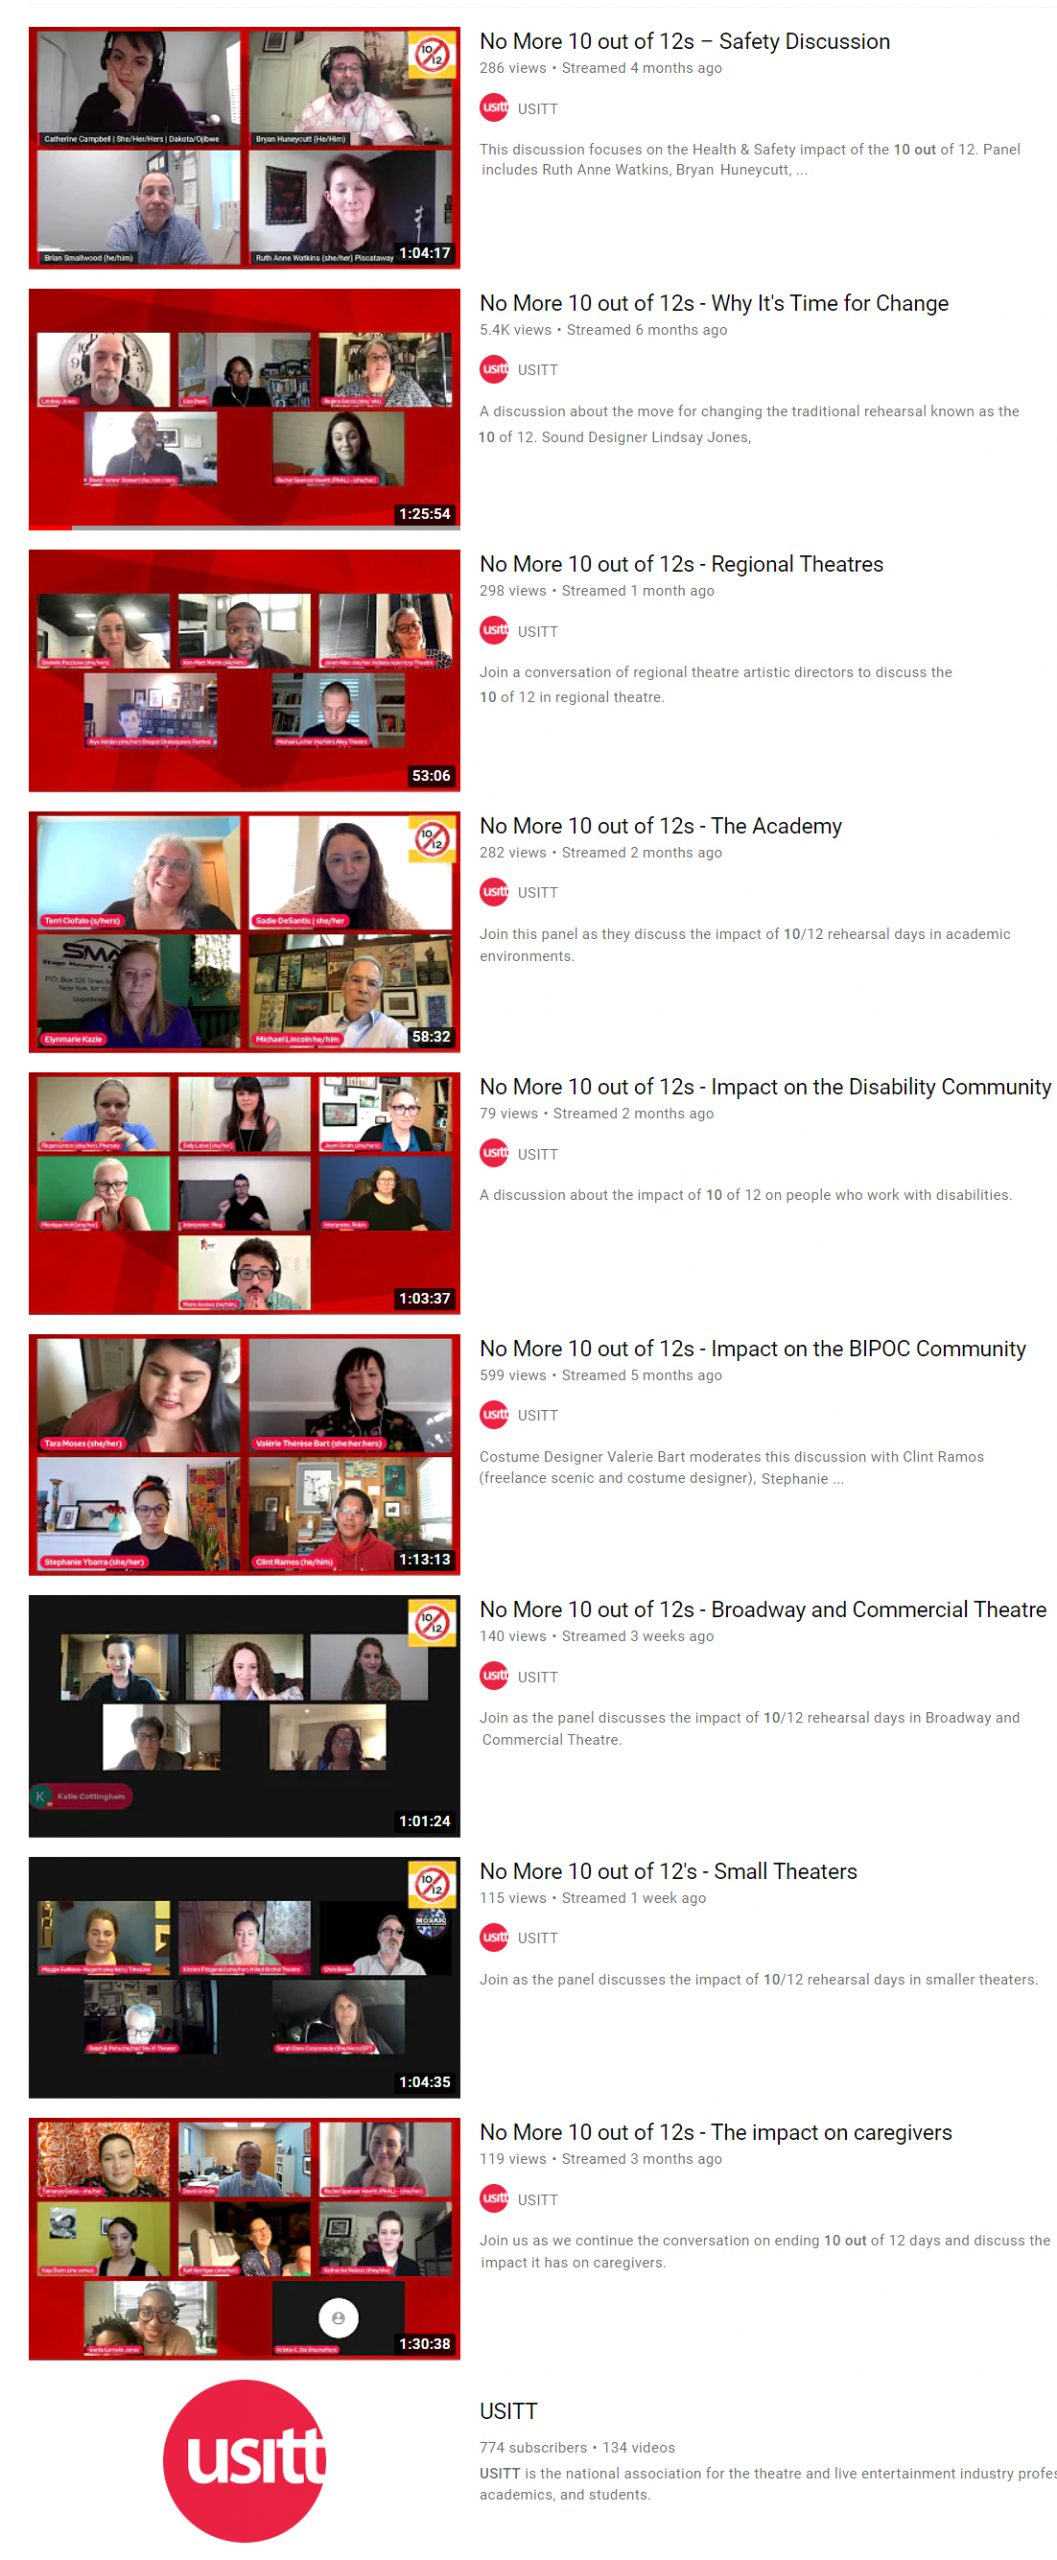 Nine different video screens are shown from the USITT YouTube channel.  Each shows an arrangement of panelists giving Zoom discussions about different aspects of the 10 out of 12 topic.